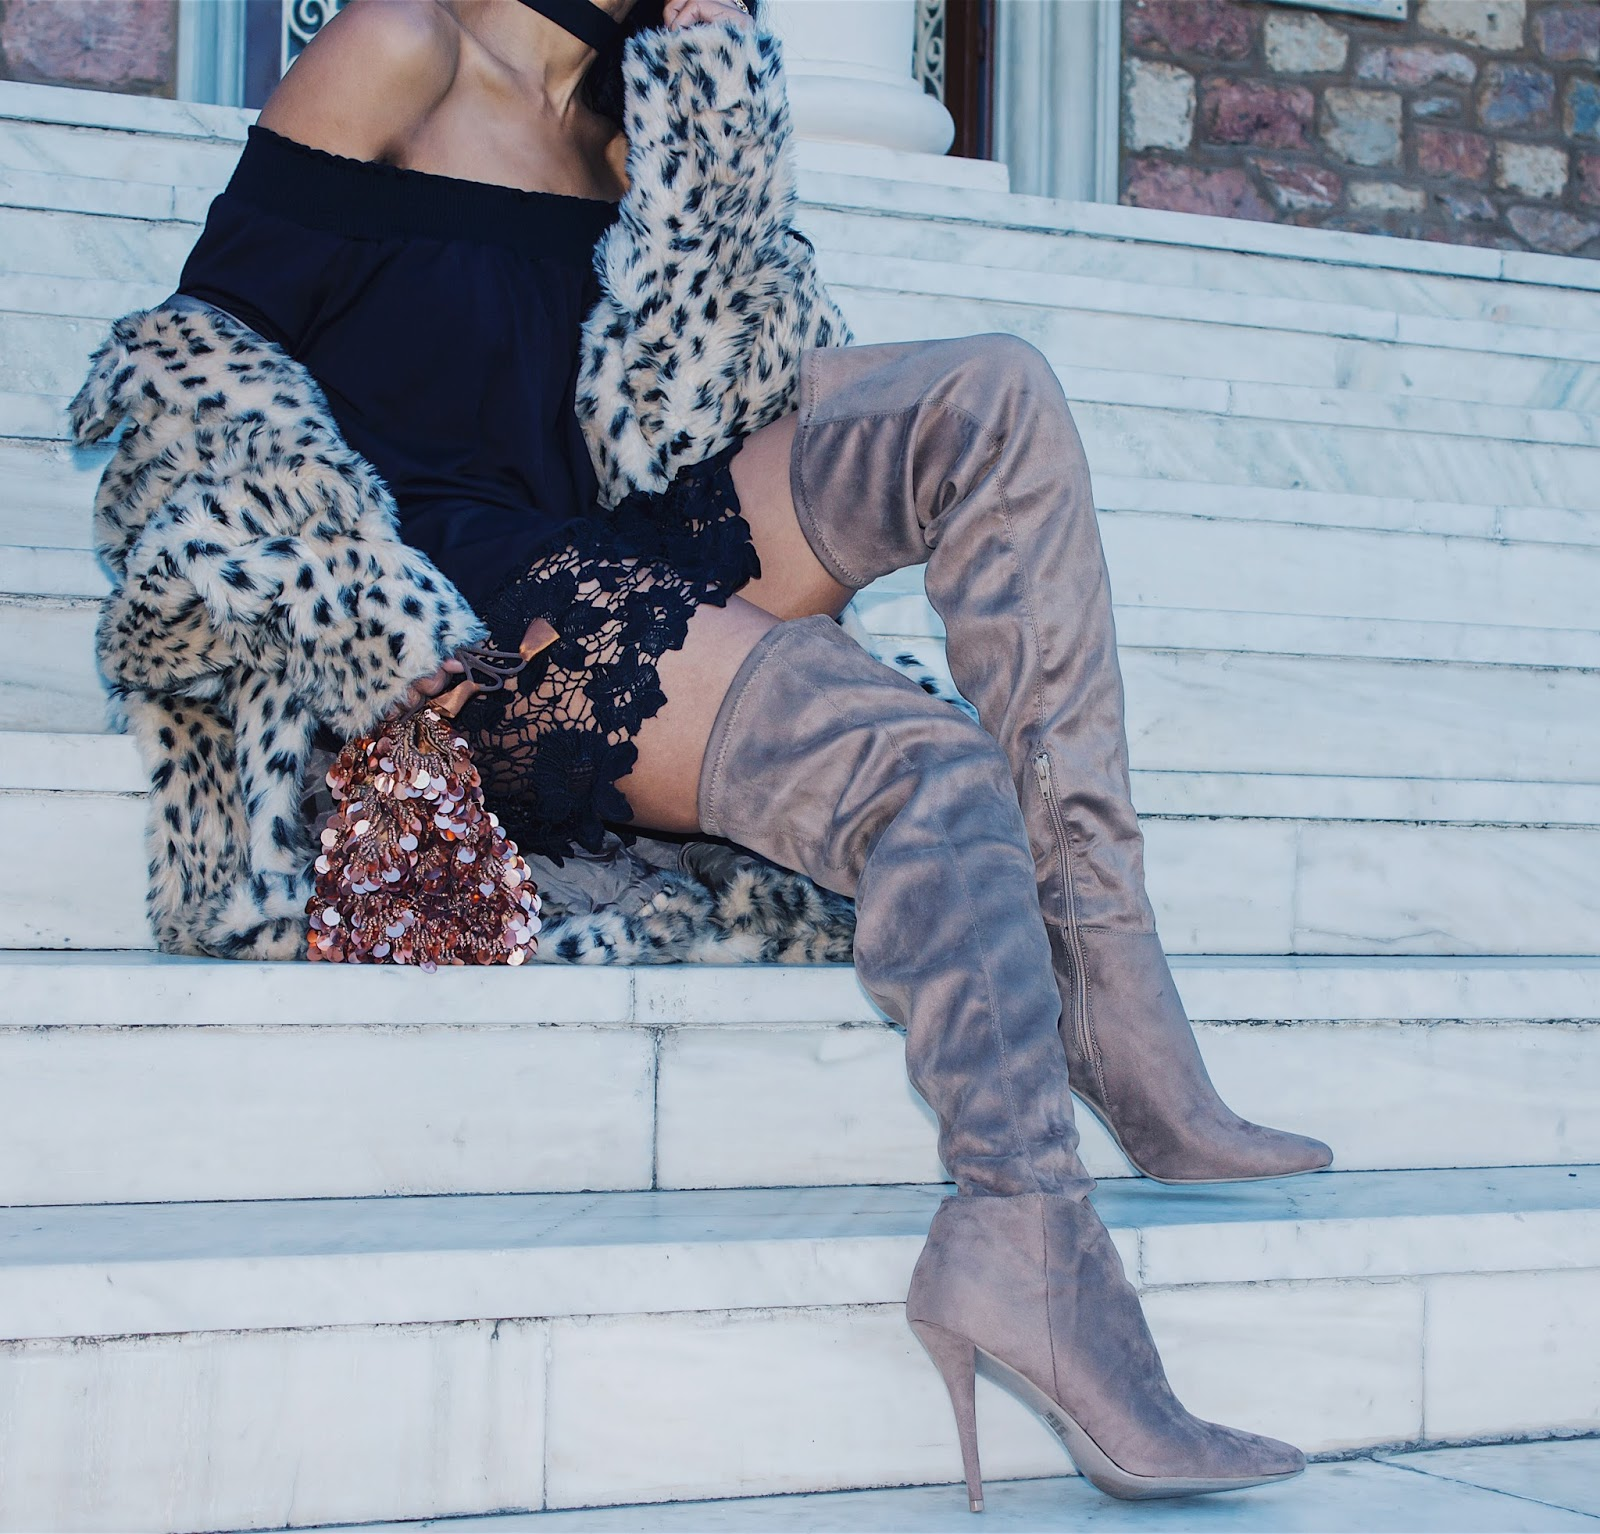 7535de79465 These taupe faux suede thigh-high boots are so warm and comfortable to  wear. These exact same style boots are also available in black at TOBI.